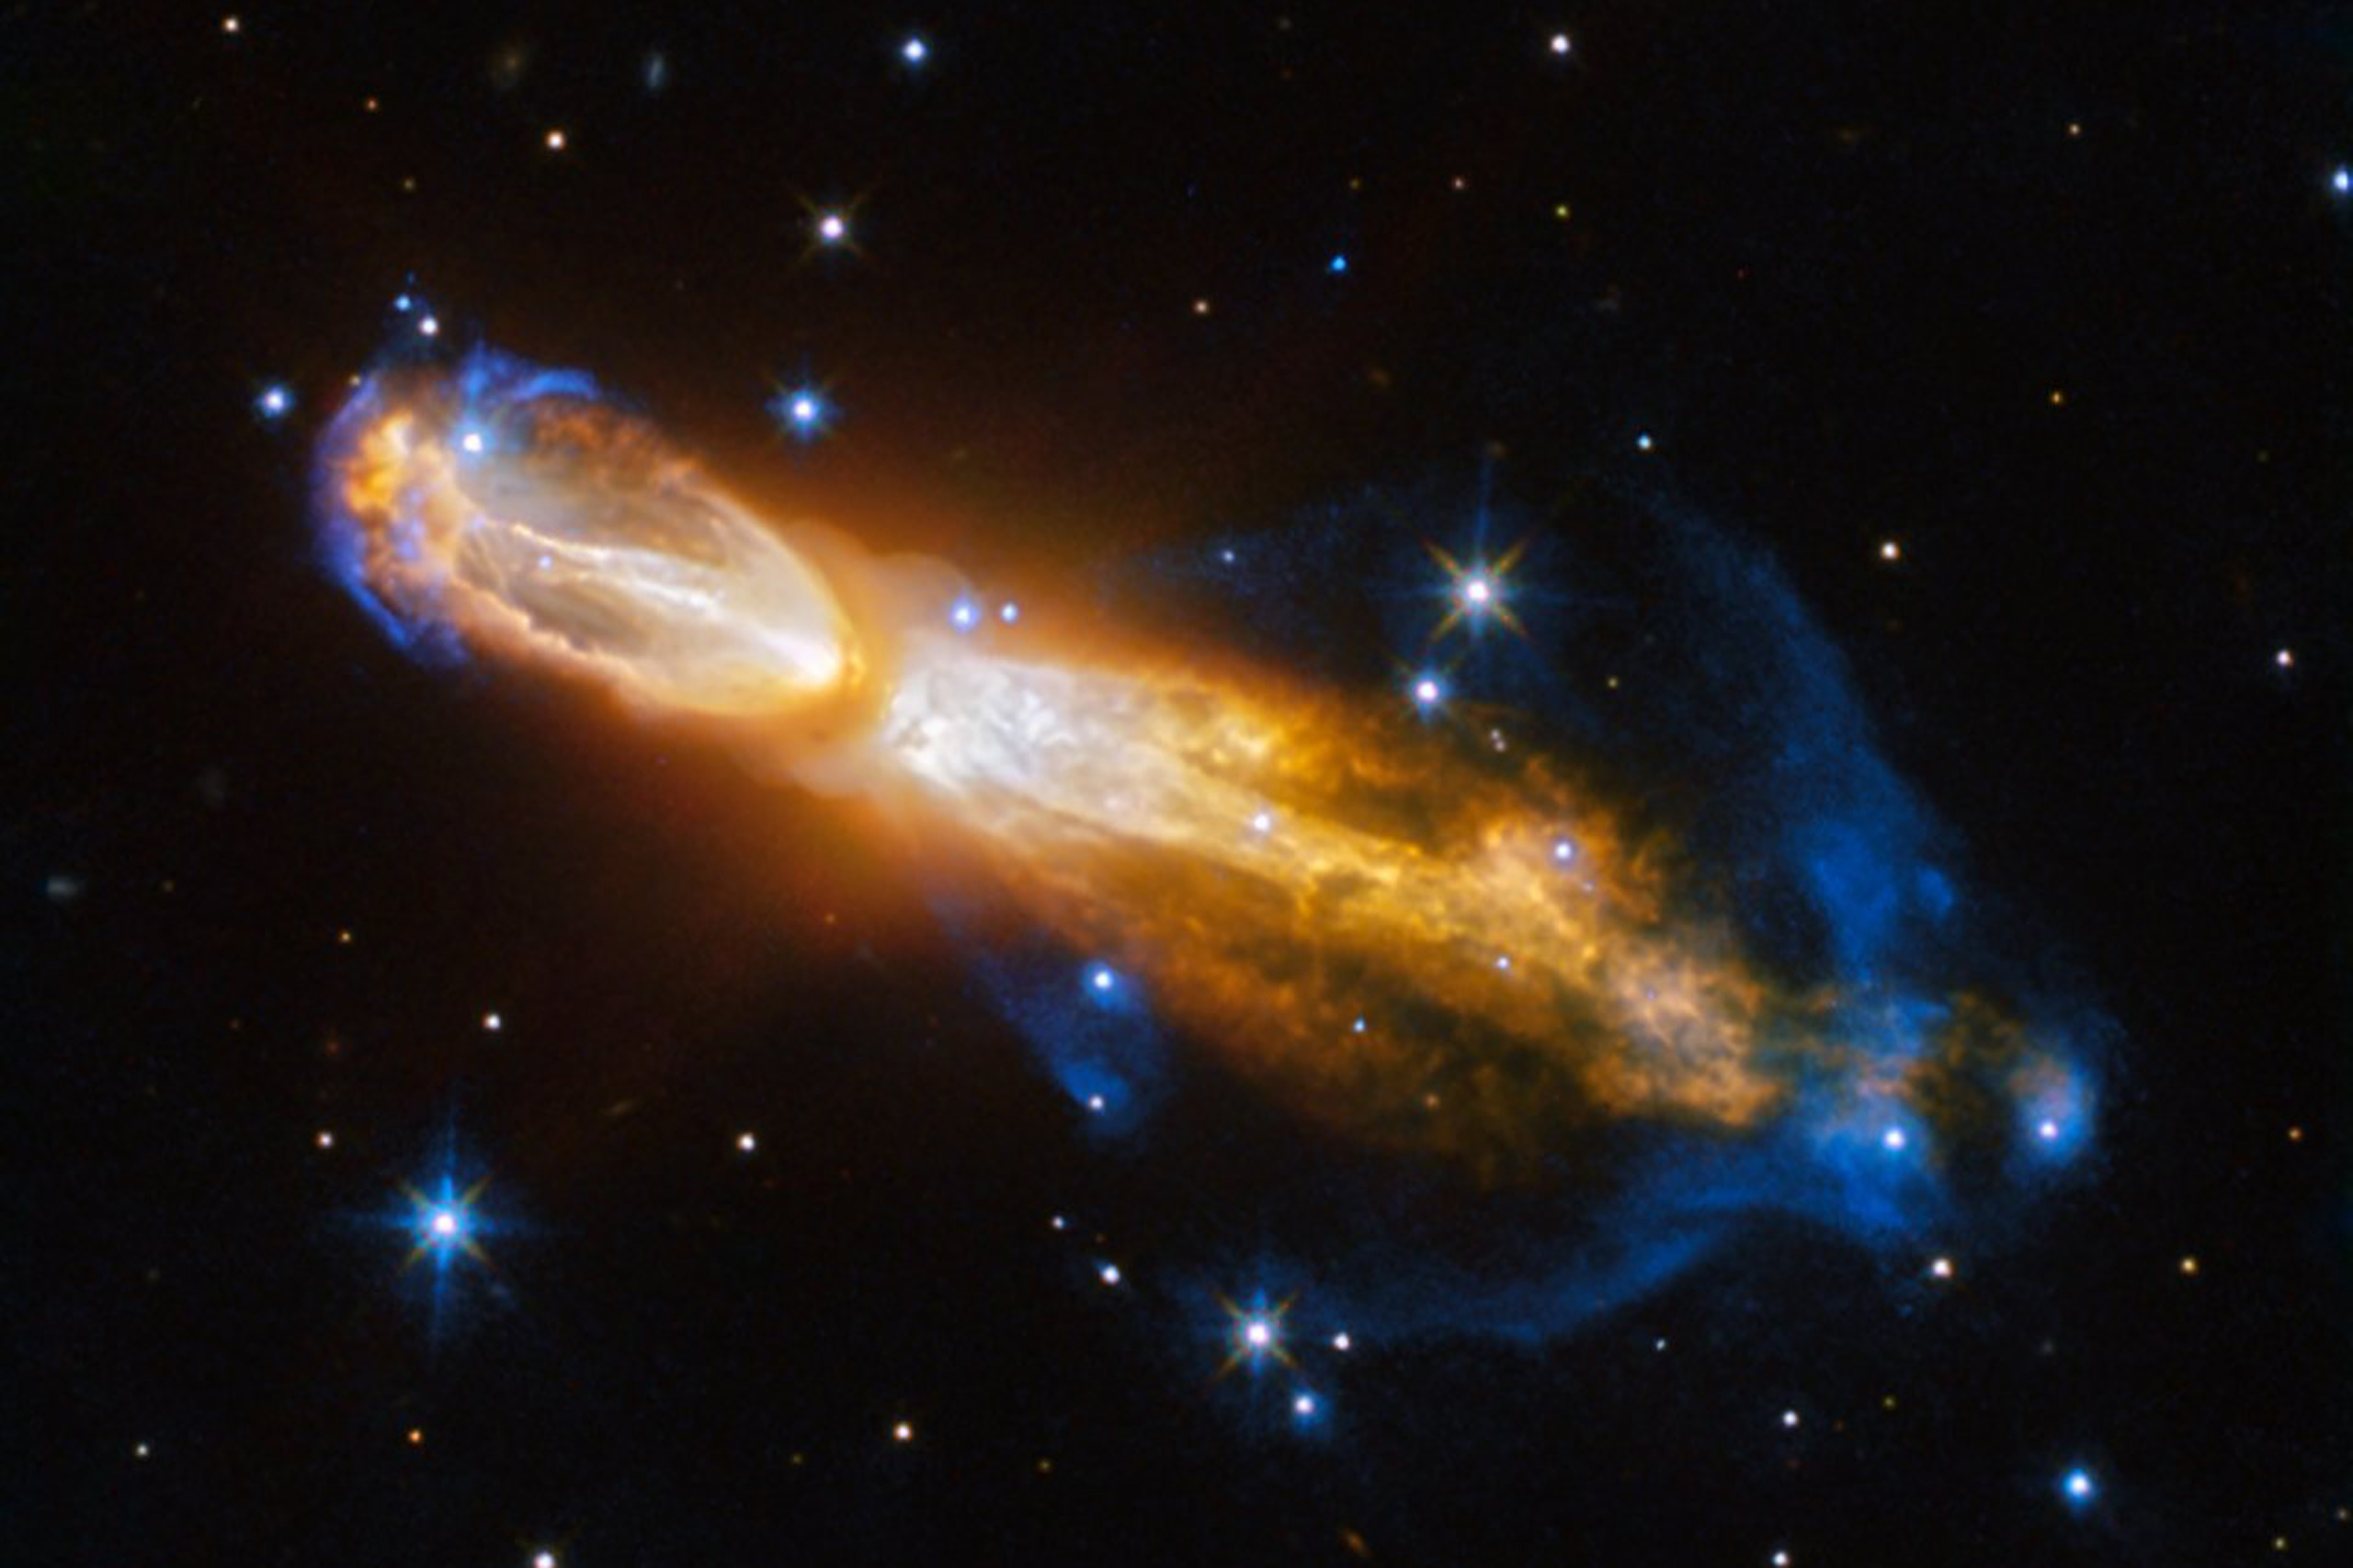 The Calabash Nebula, pictured here — which has the technical name OH 231.8+04.2 — is a spectacular example of the death of a low-mass star like the Sun.